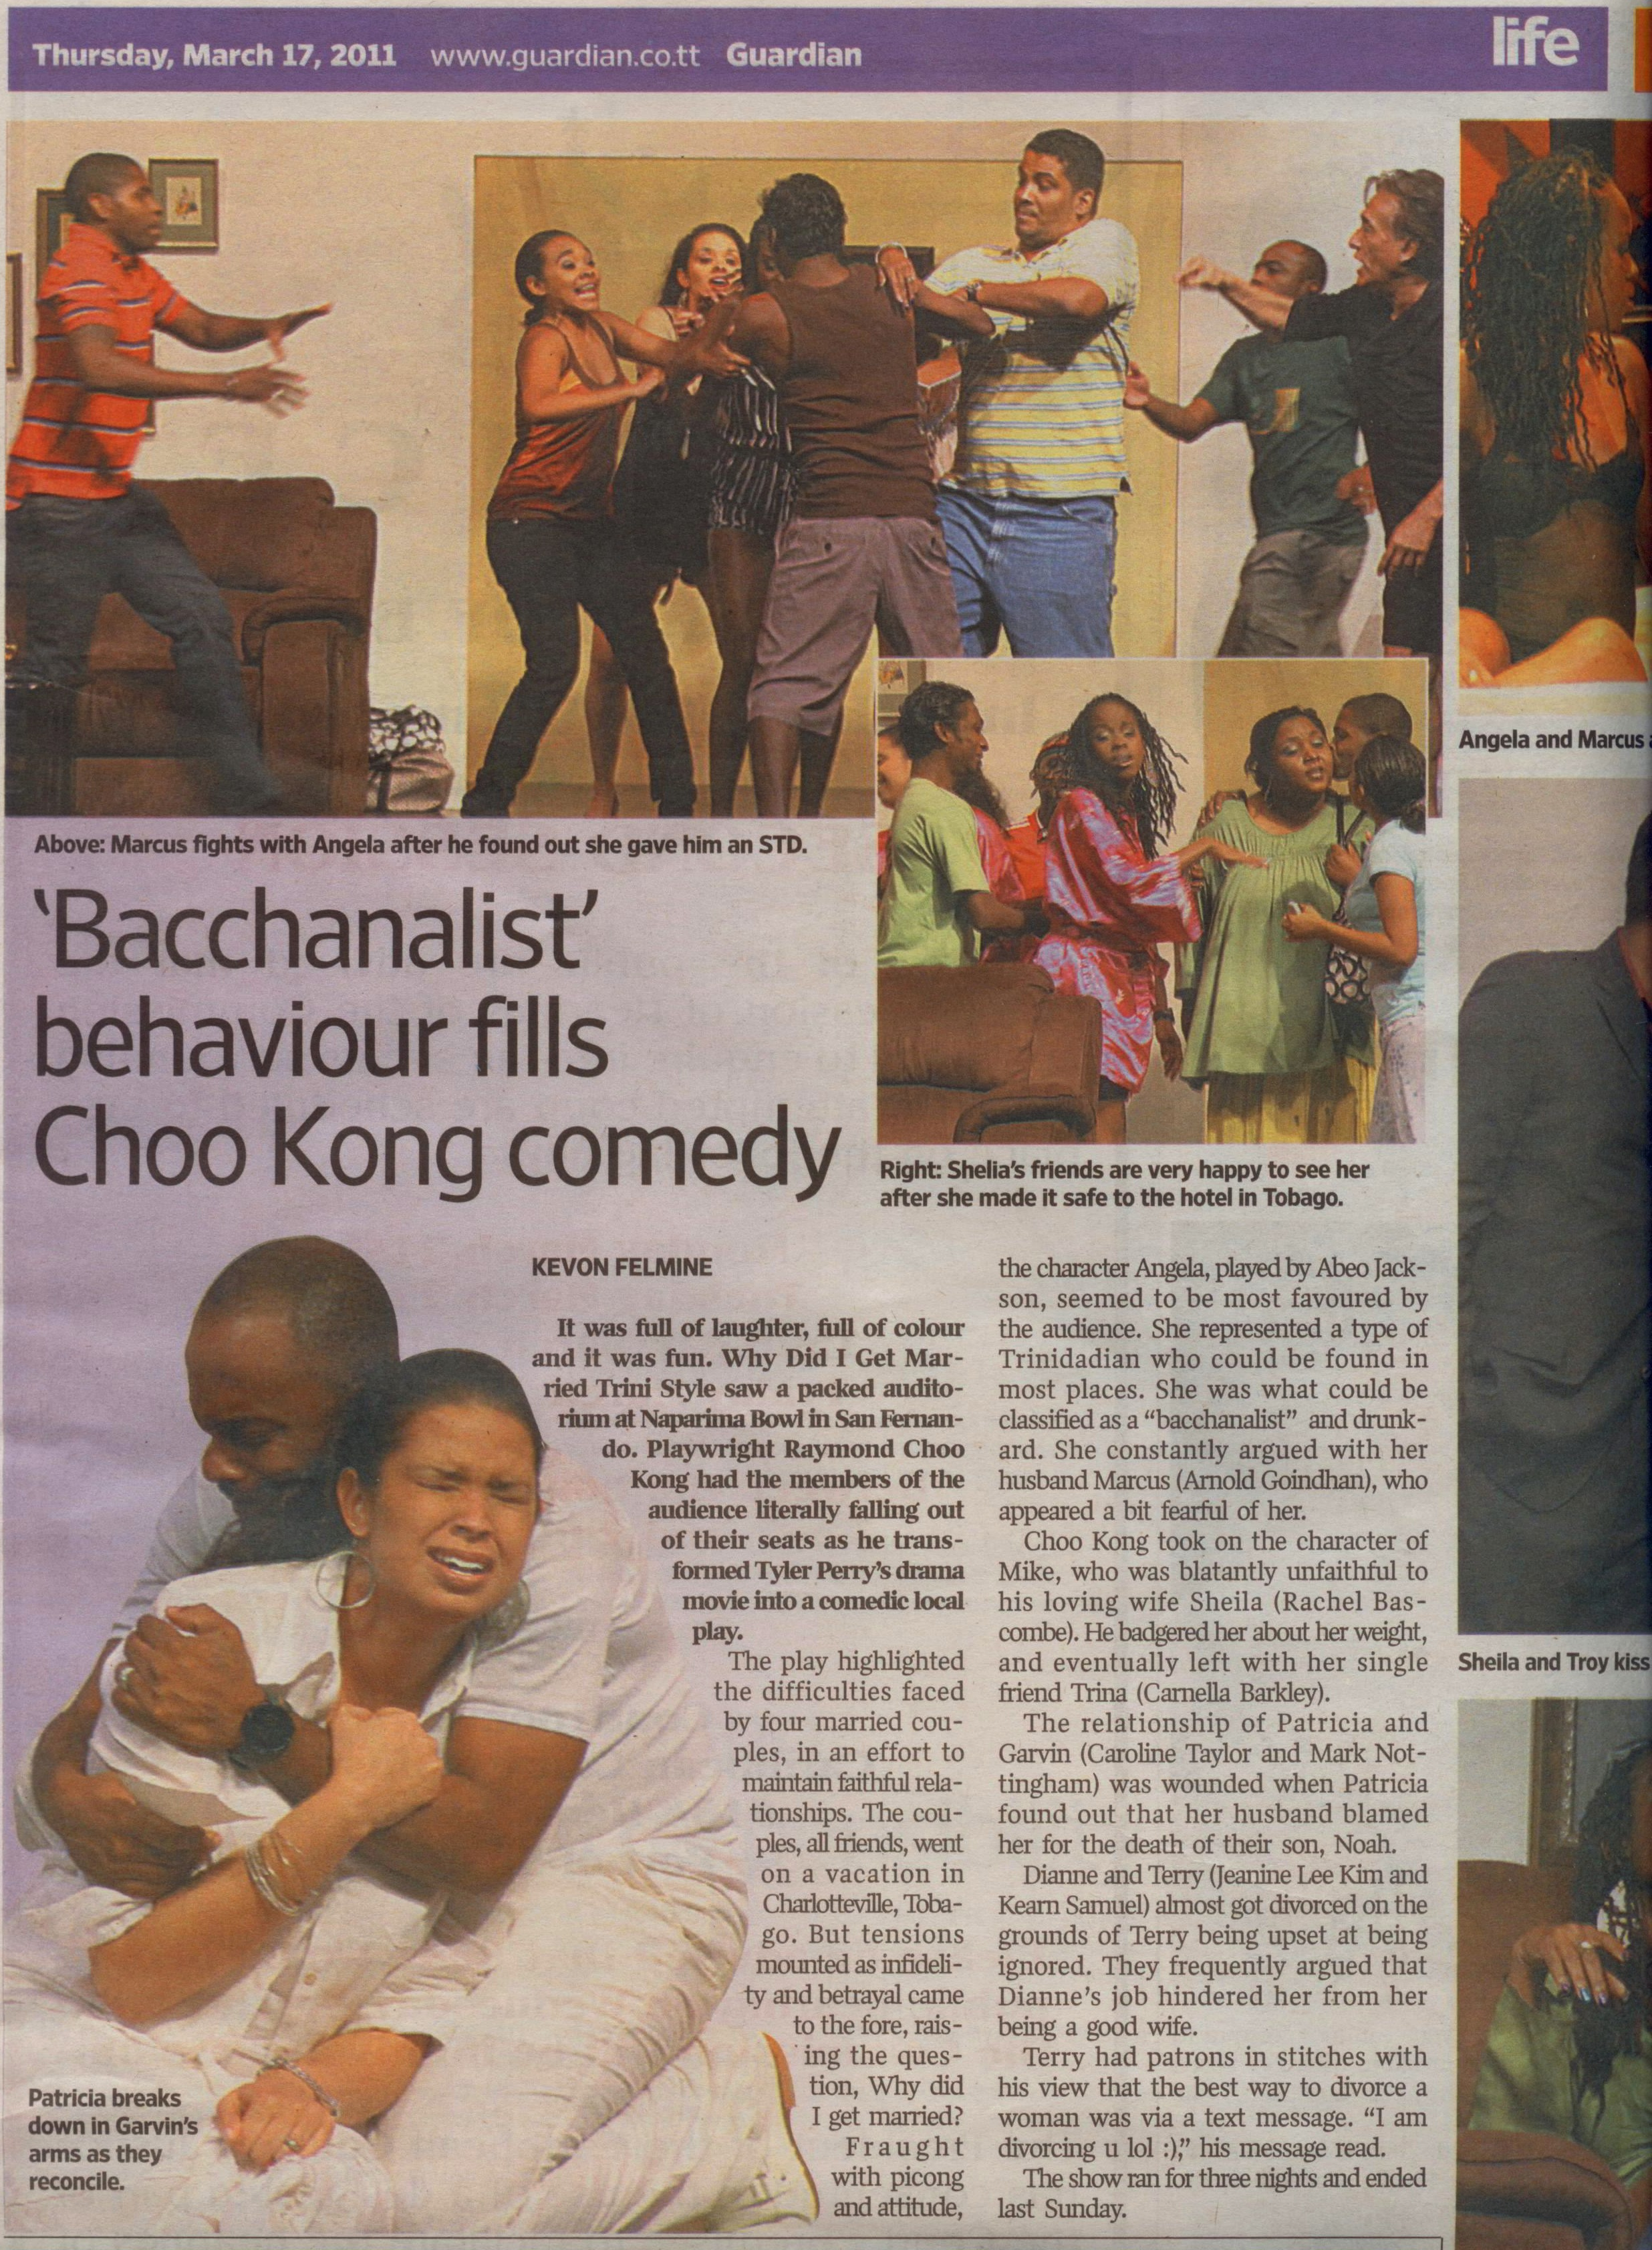 """Review of """"Why Did I Get Married?"""", starring Raymond Choo Kong, Rachel Bascombe, Arnold Goindhan, Abeo Jackson, Jeanine Lee Kim, Mark Nottingham, Kearn Samuel, Chris Smith, and Caroline Taylor. Published in the Trinidad & Tobago Guardian"""